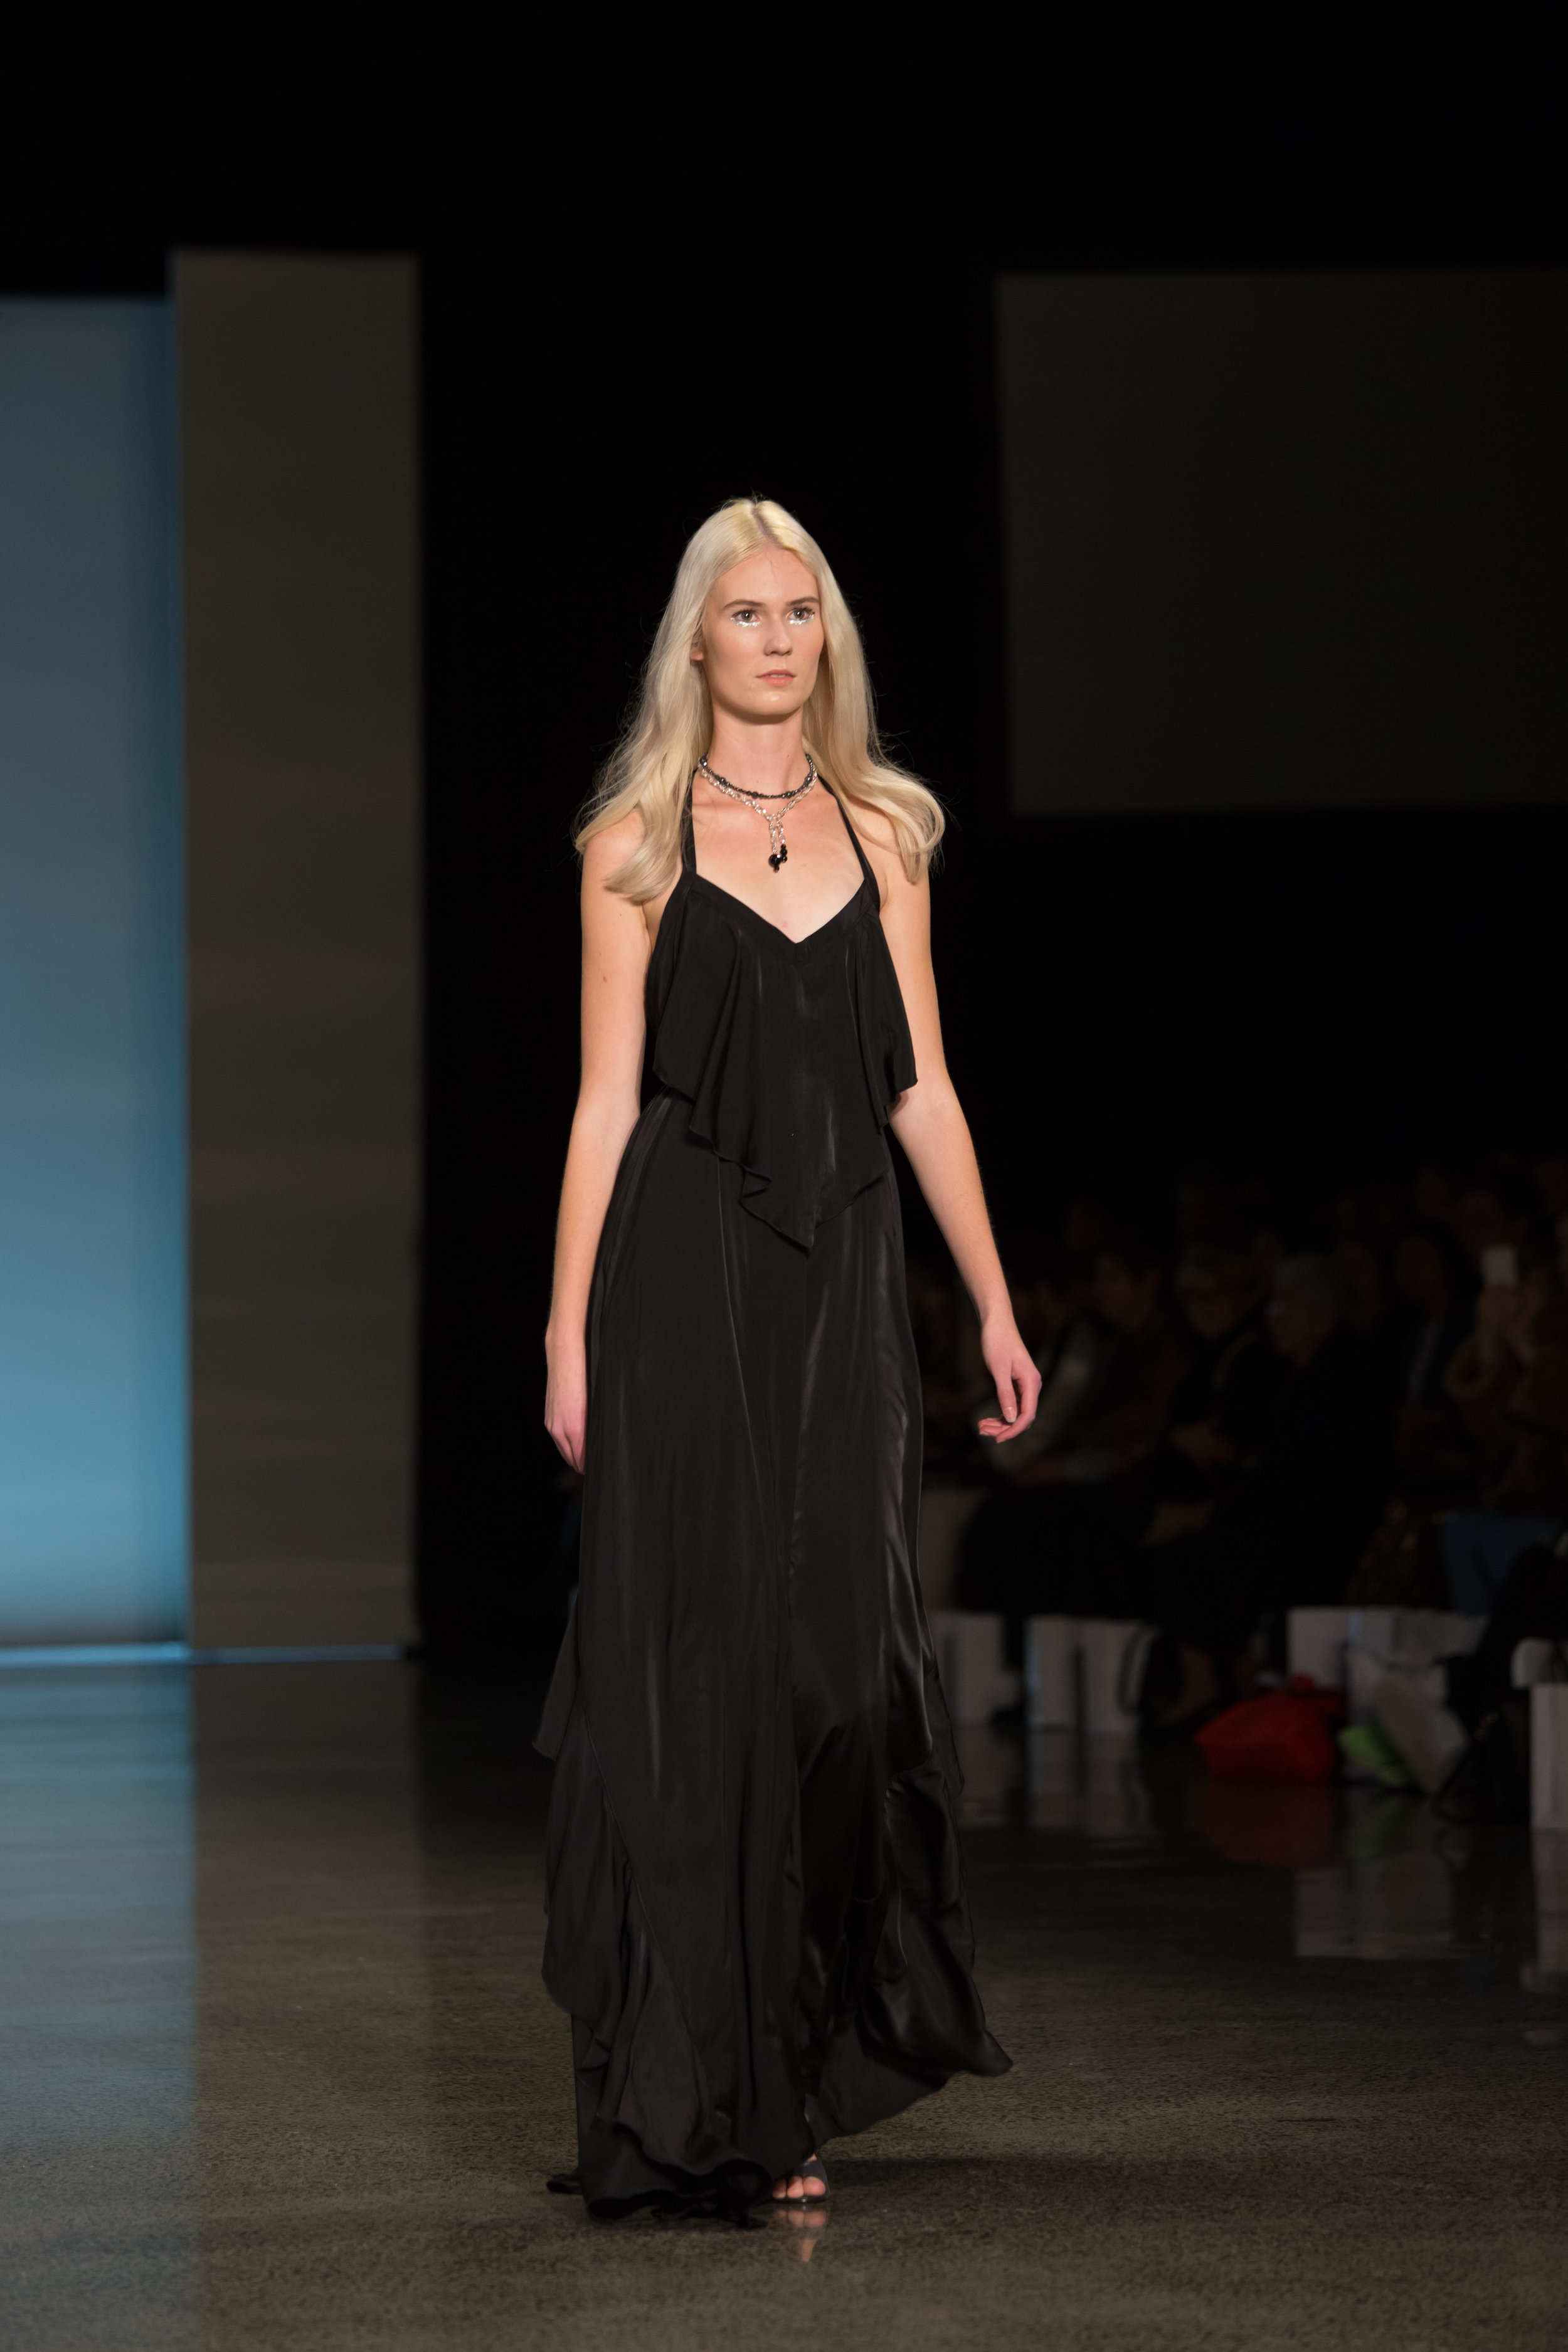 """NZ Fashion Week Runway Show ROCHELLE - TORY & KO. created a Limited Edition line of jewellery called """"Meteorite"""" as part of their Stella by TORY & KO. Collection. This was launched on the Runway at the ROCHELLE Show on closing night at NZ Fashion Week."""